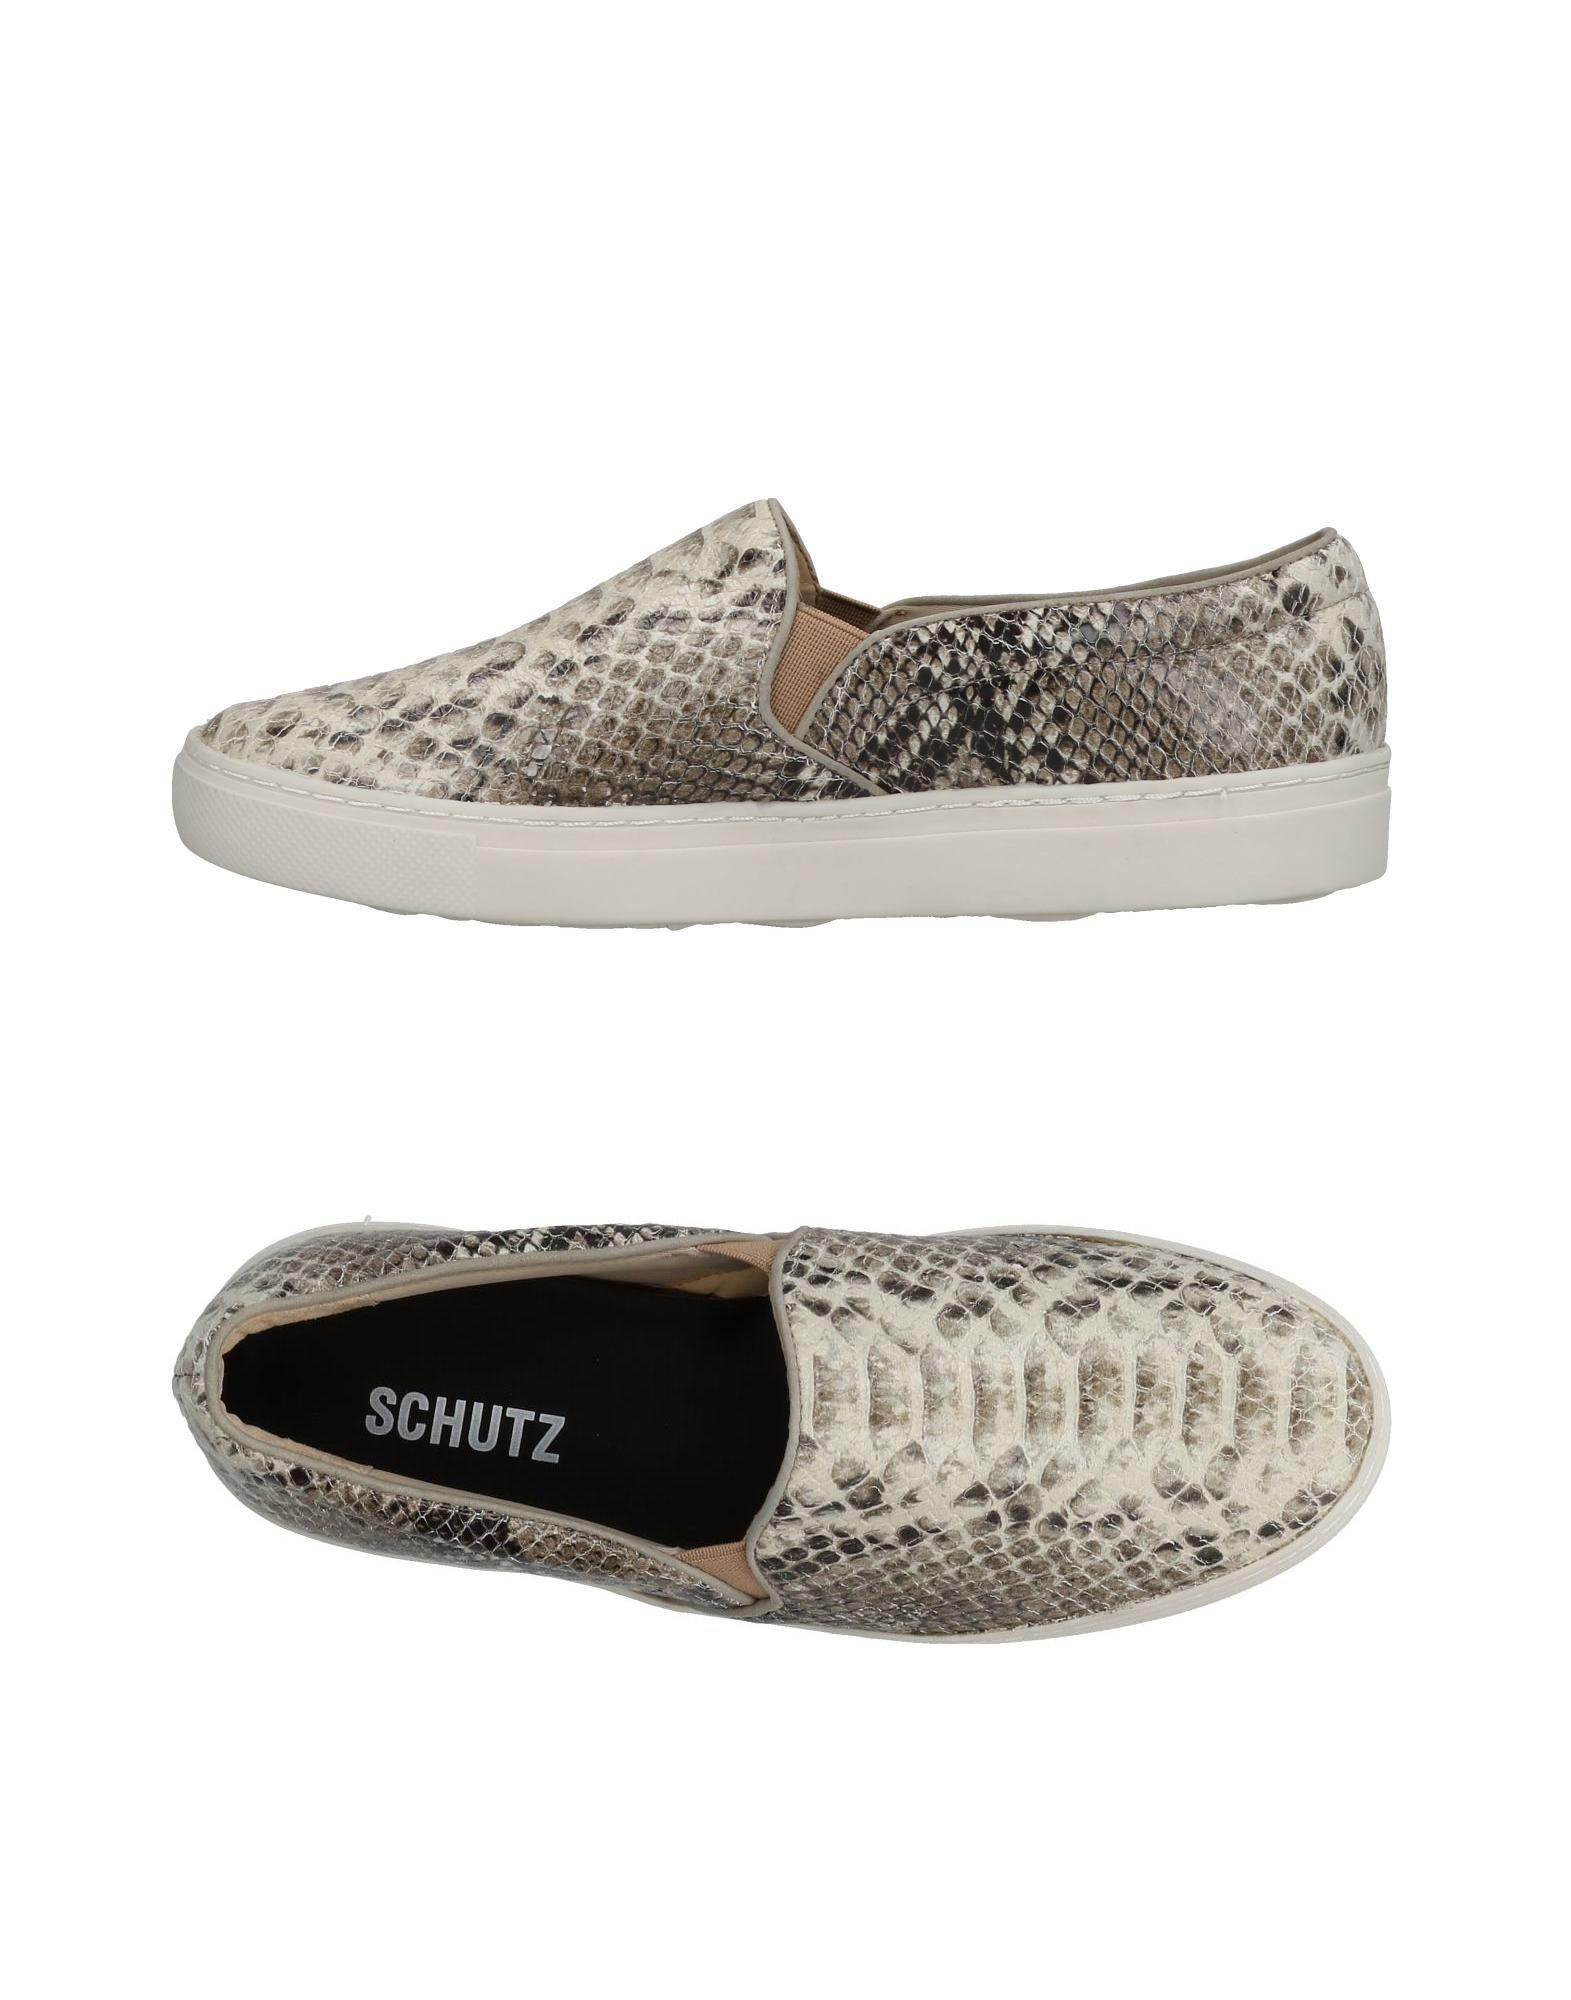 FOOTWEAR - Low-tops & sneakers Schutz 4ZF5dH